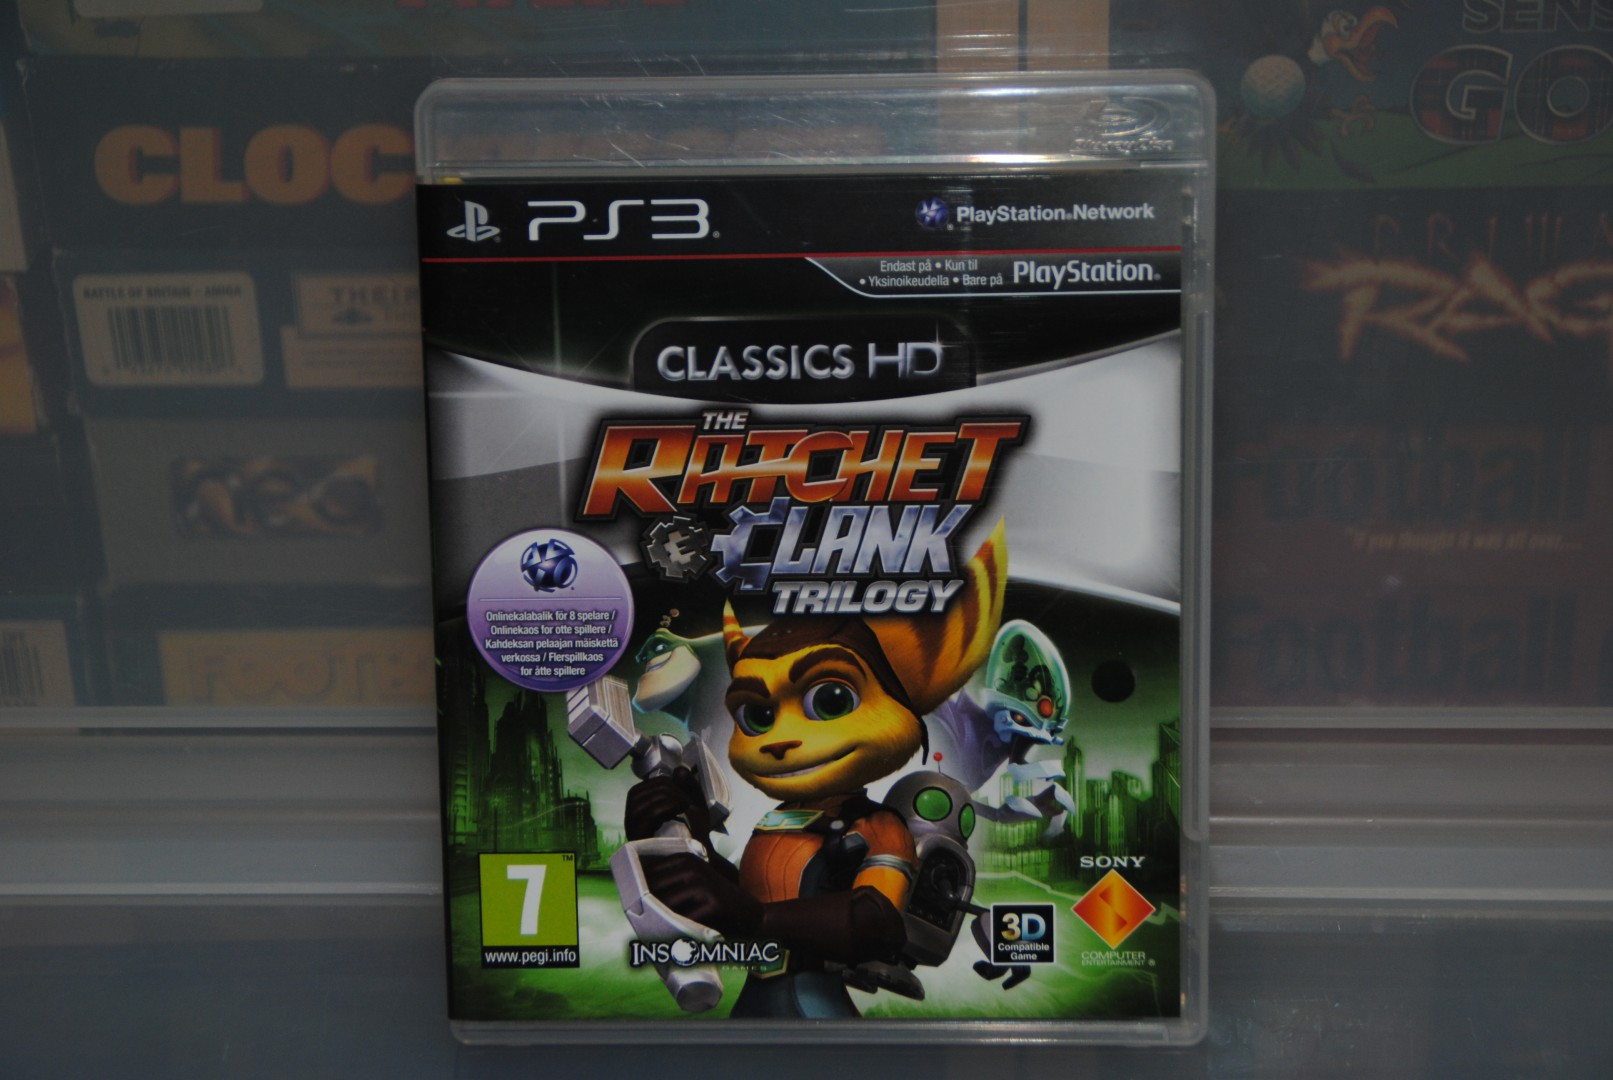 Ratchet & Clank Trilogy HD, PS2 games gone PS3.